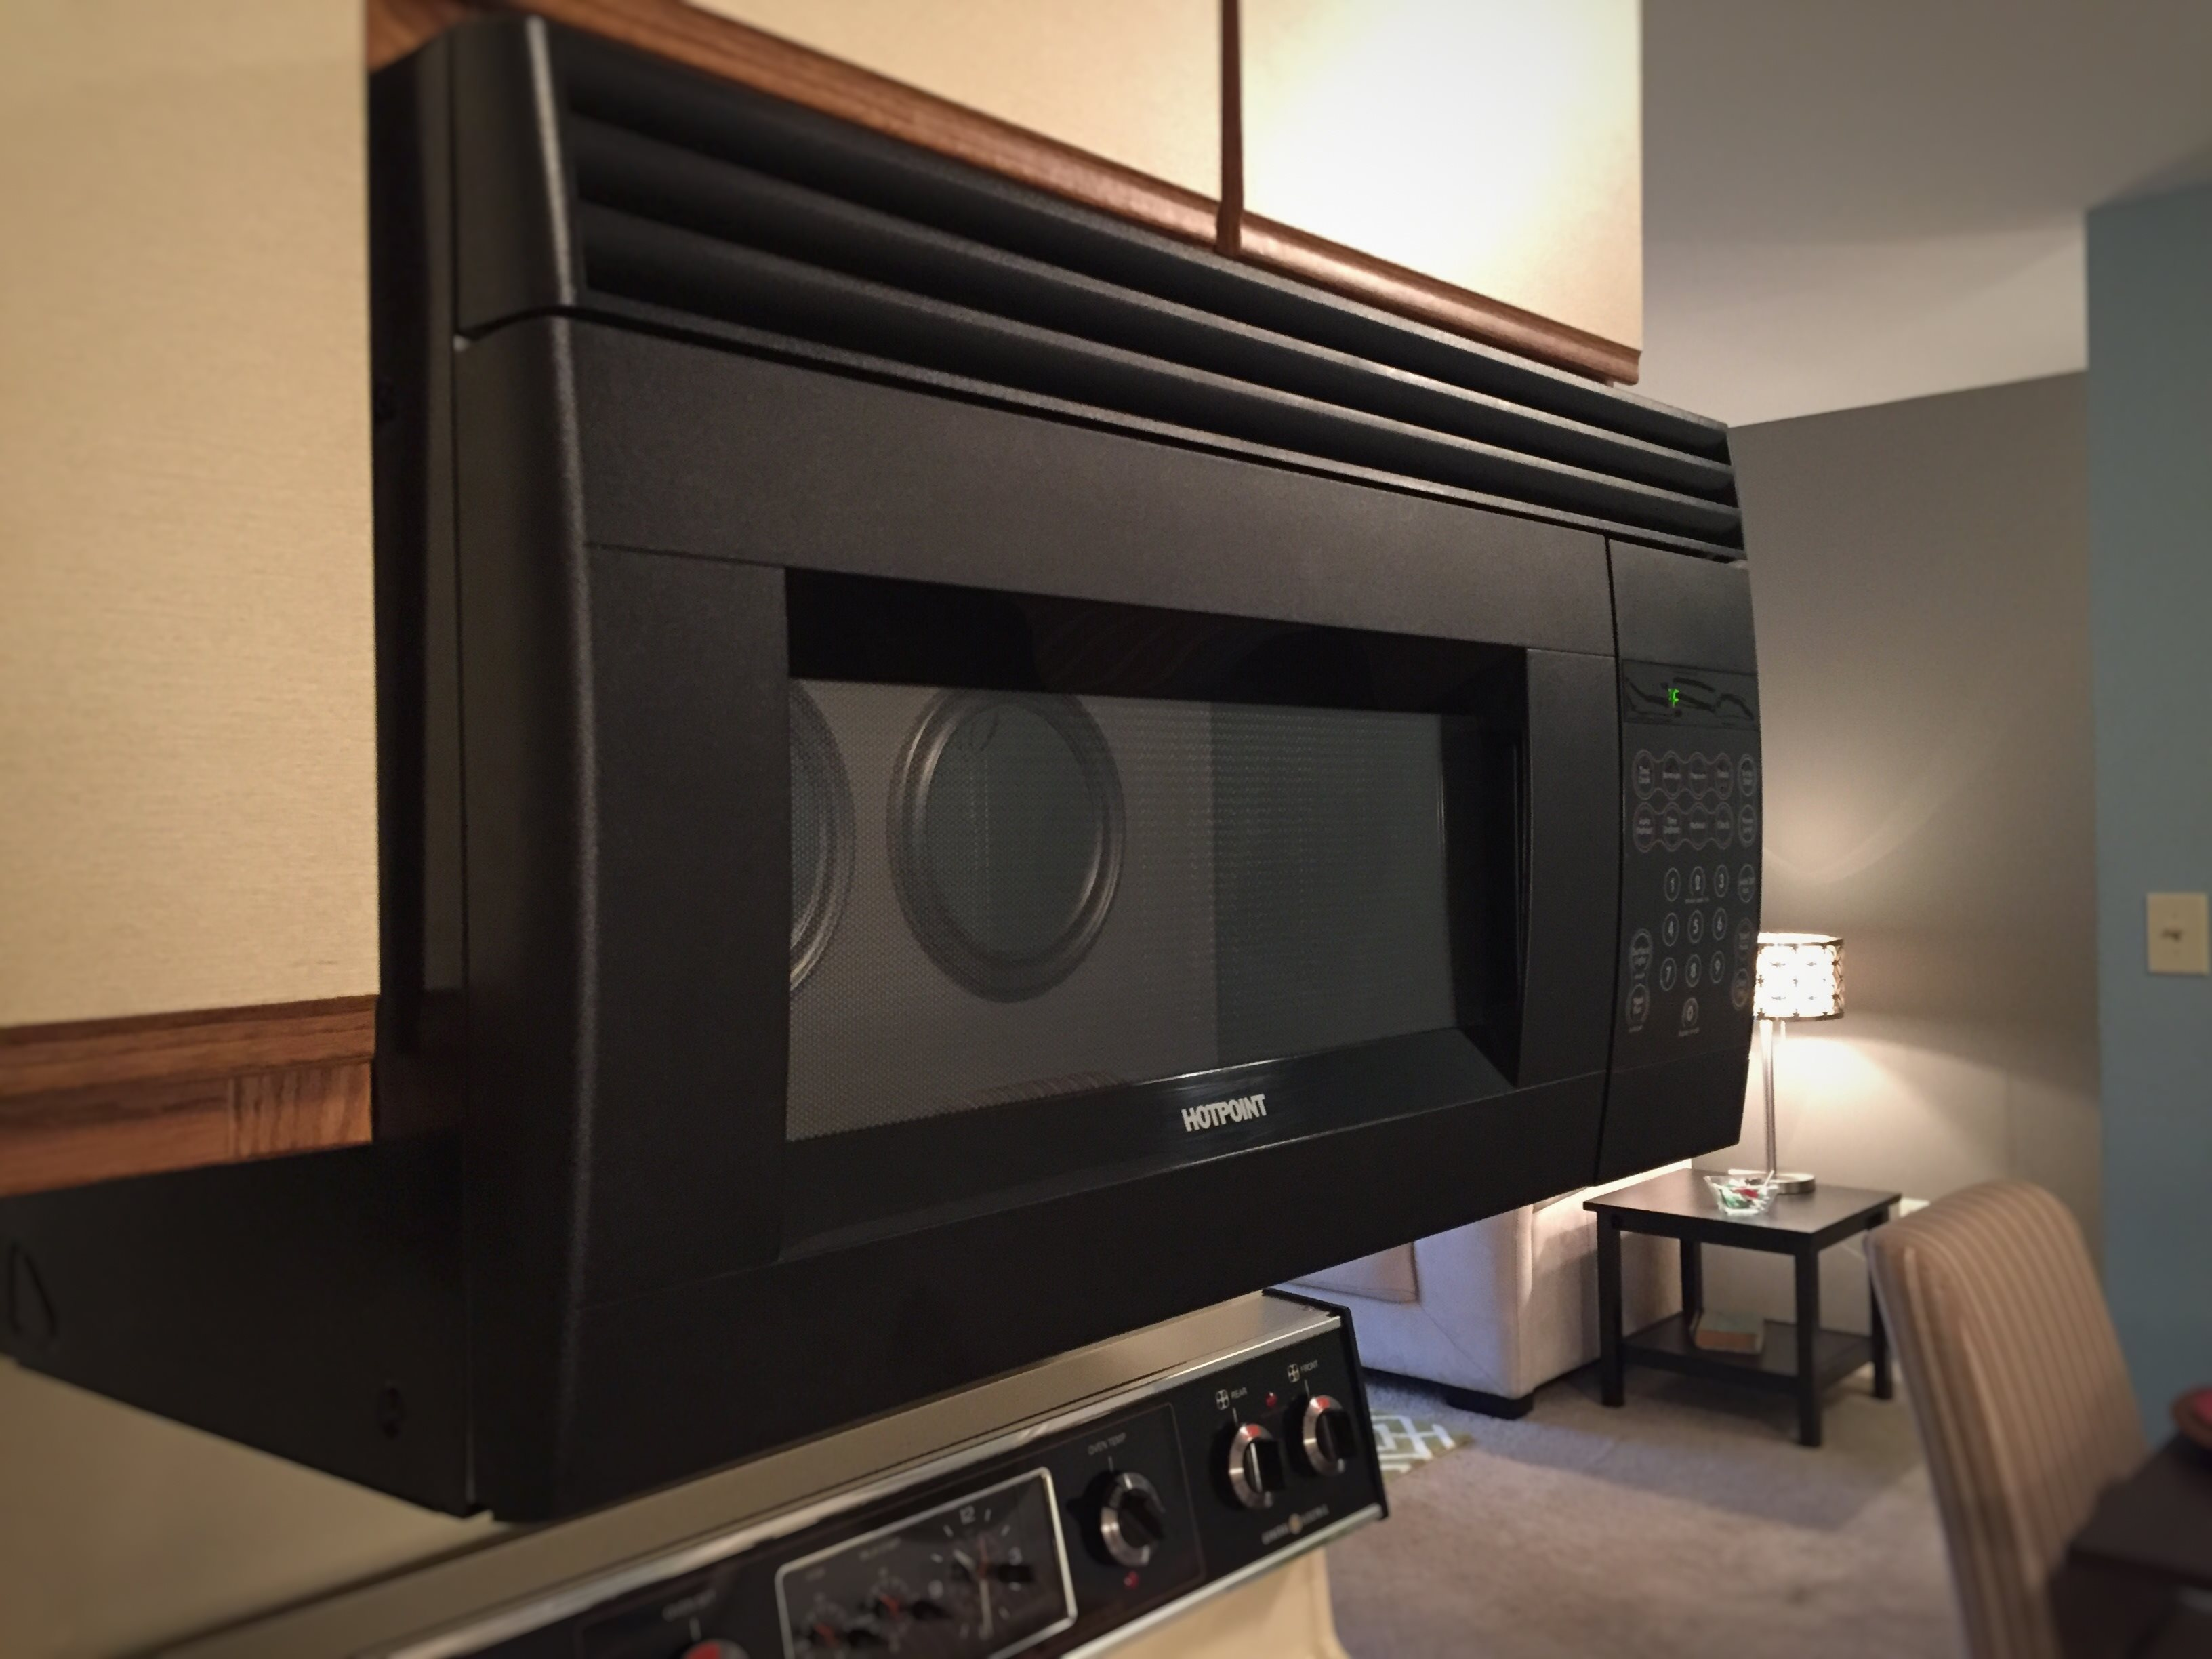 Built-in Microwave at Drawbridge Apartments East at 36420 Union Lake Road